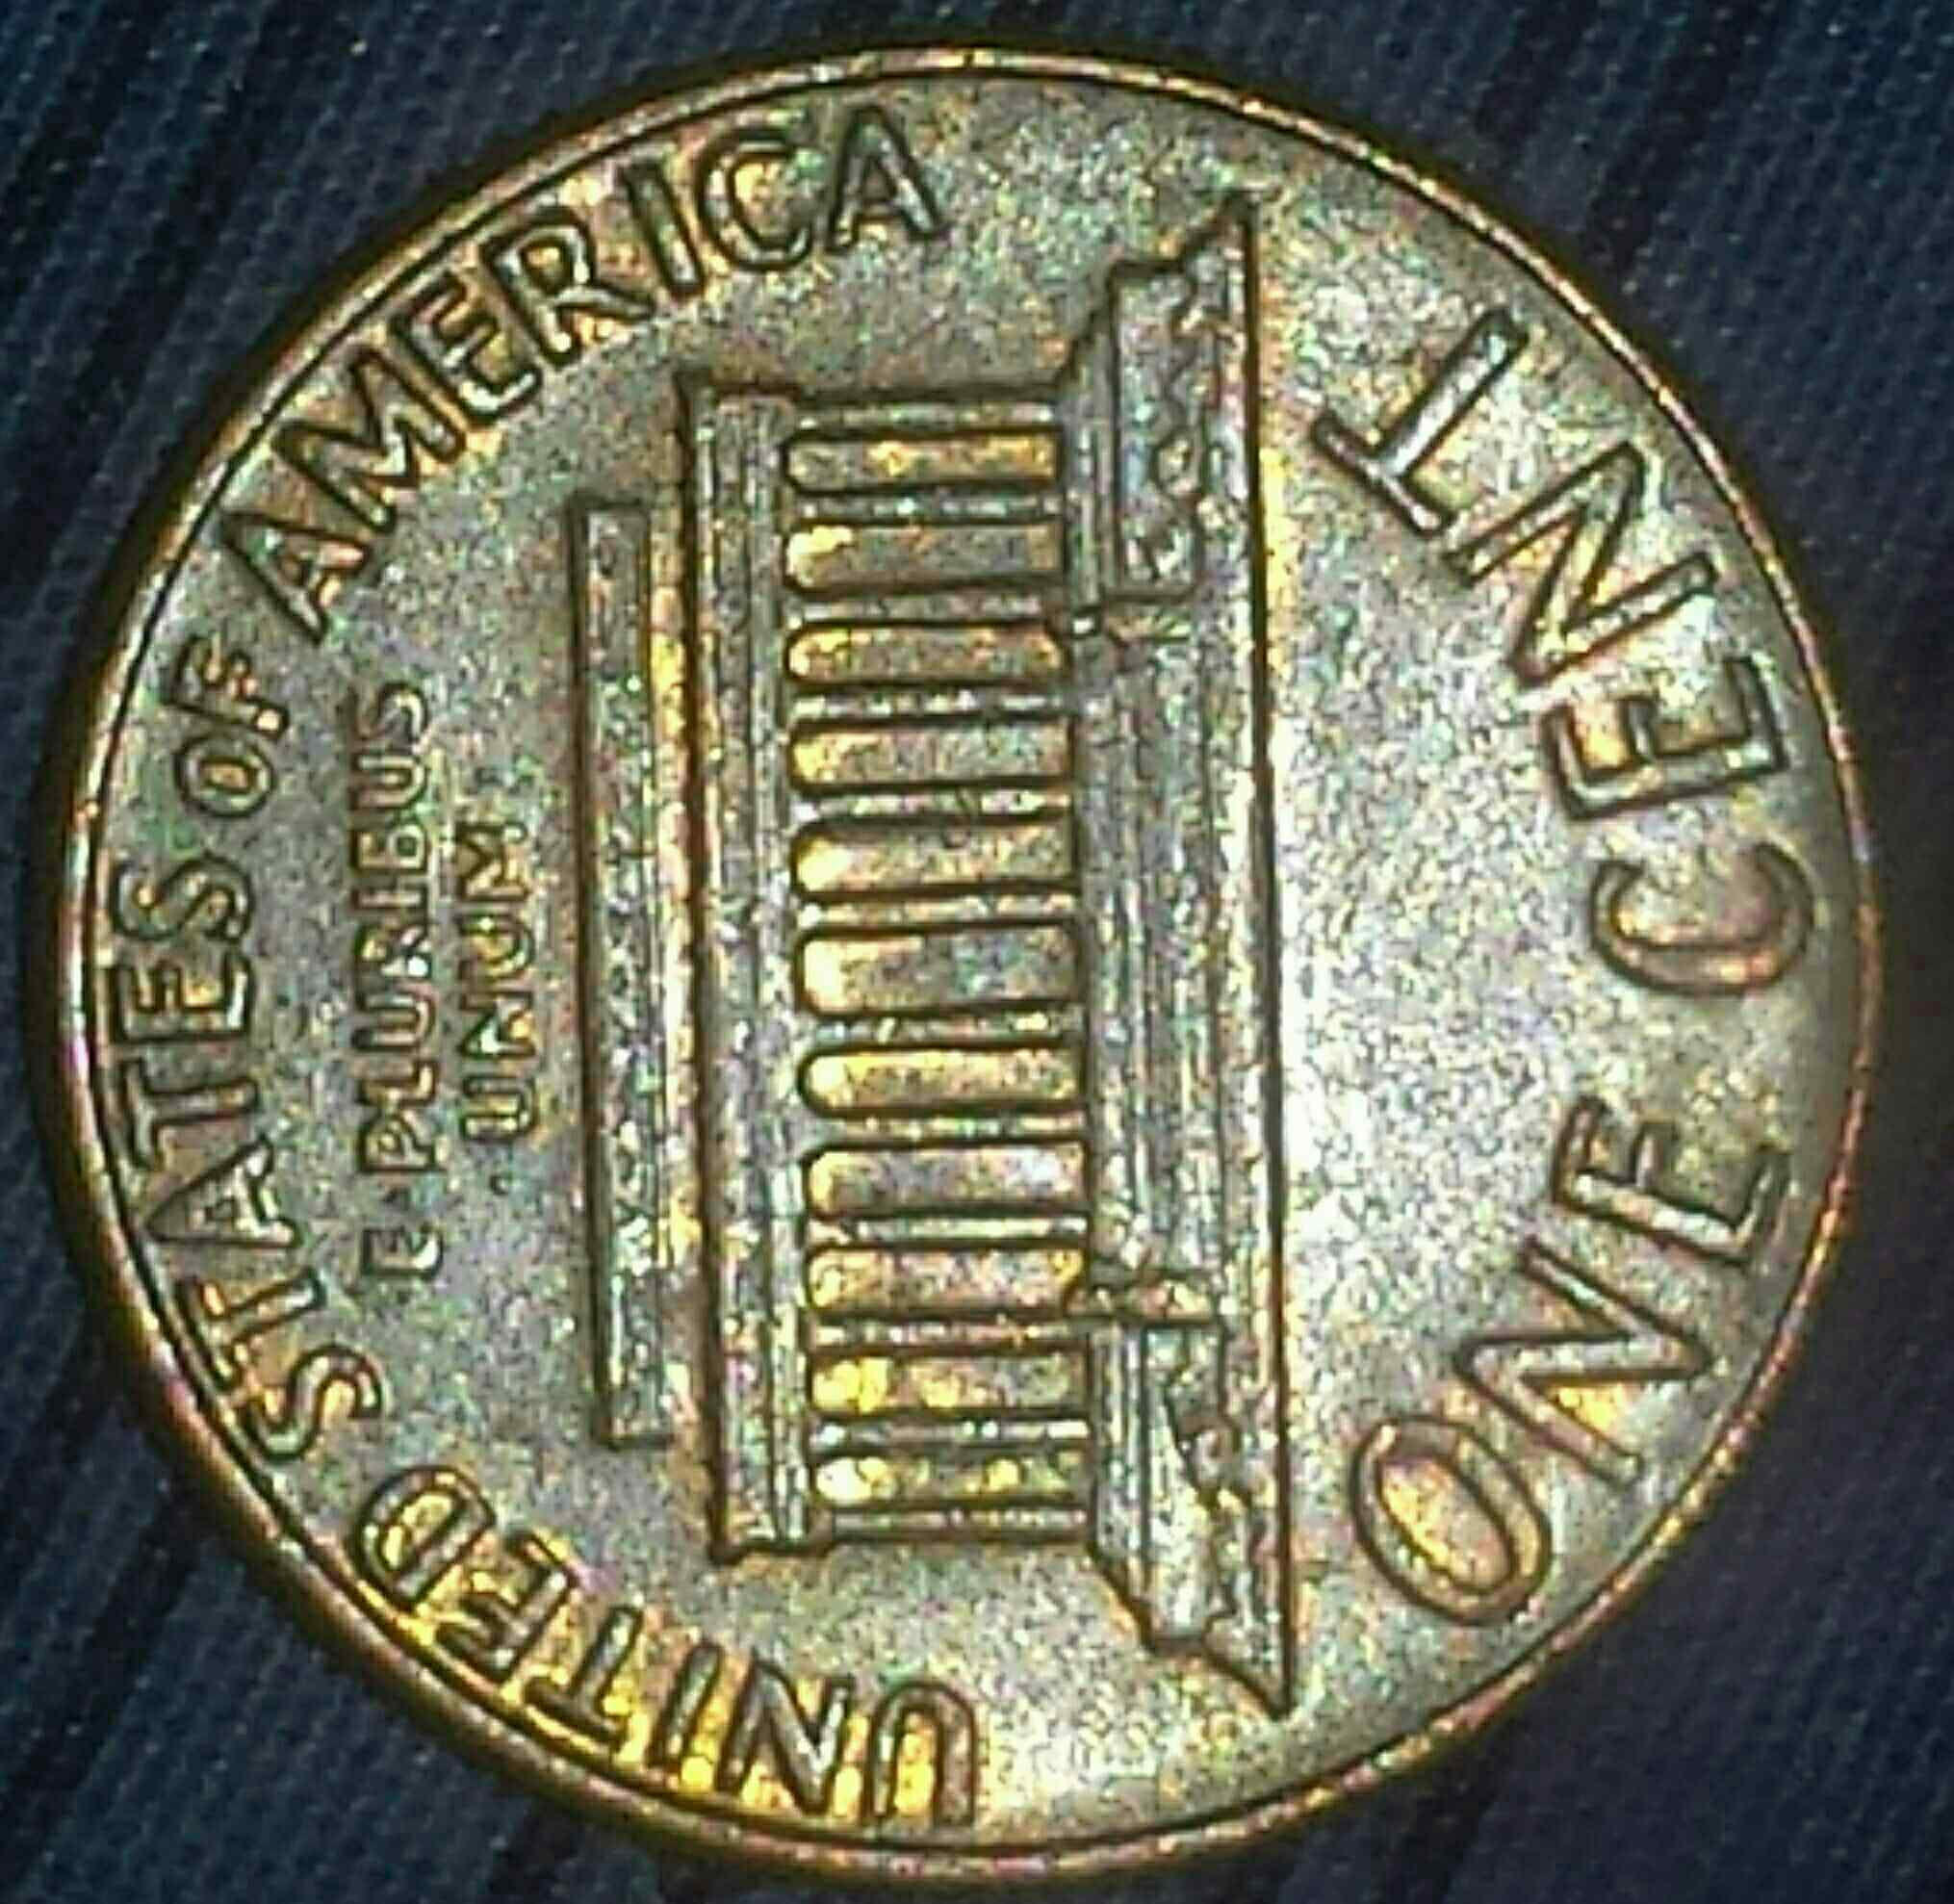 Possible 1969 D Penny No-Fg - Coin Community Forum